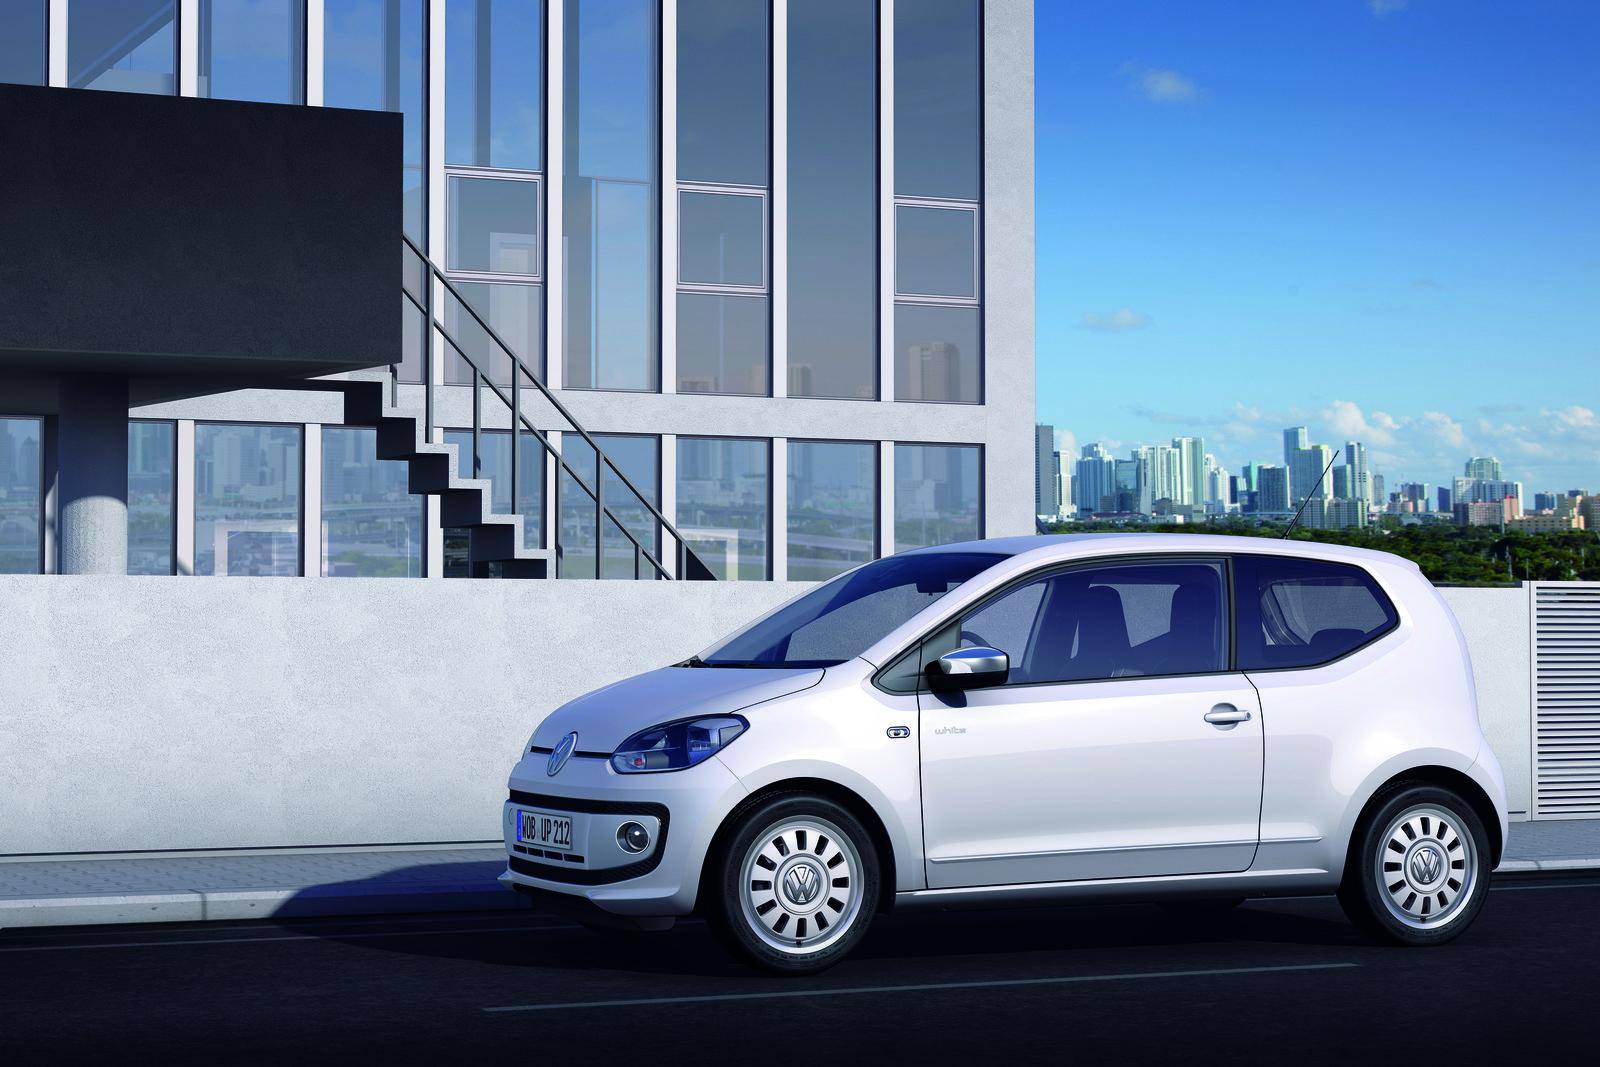 2012 volkswagen up 3 2012 Volkswagen Up! On the Roads